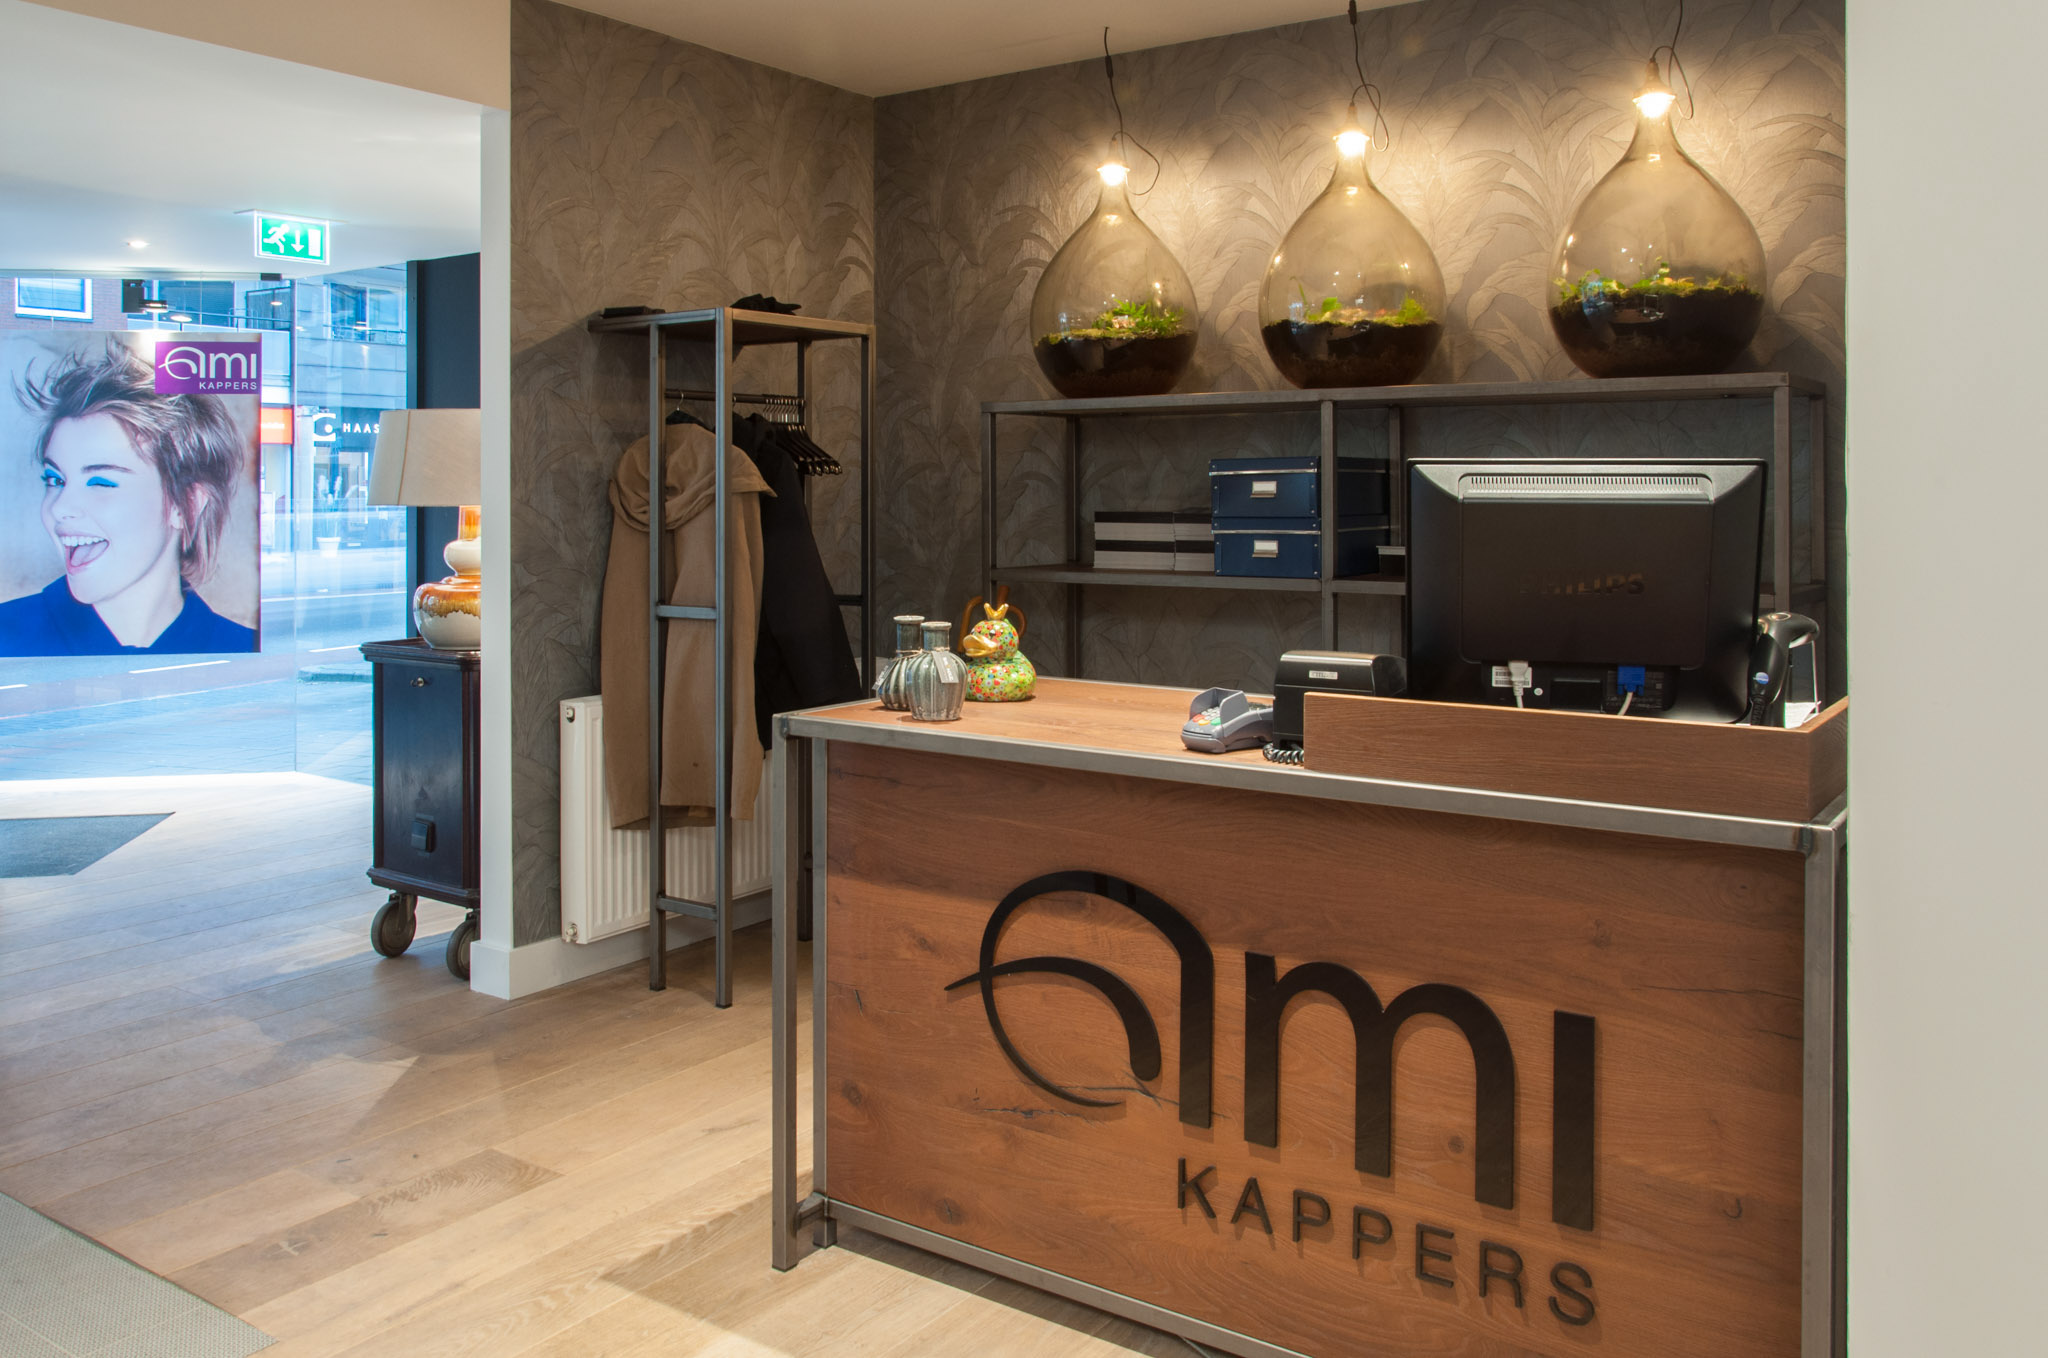 Ami Kappers Enschede On Behance